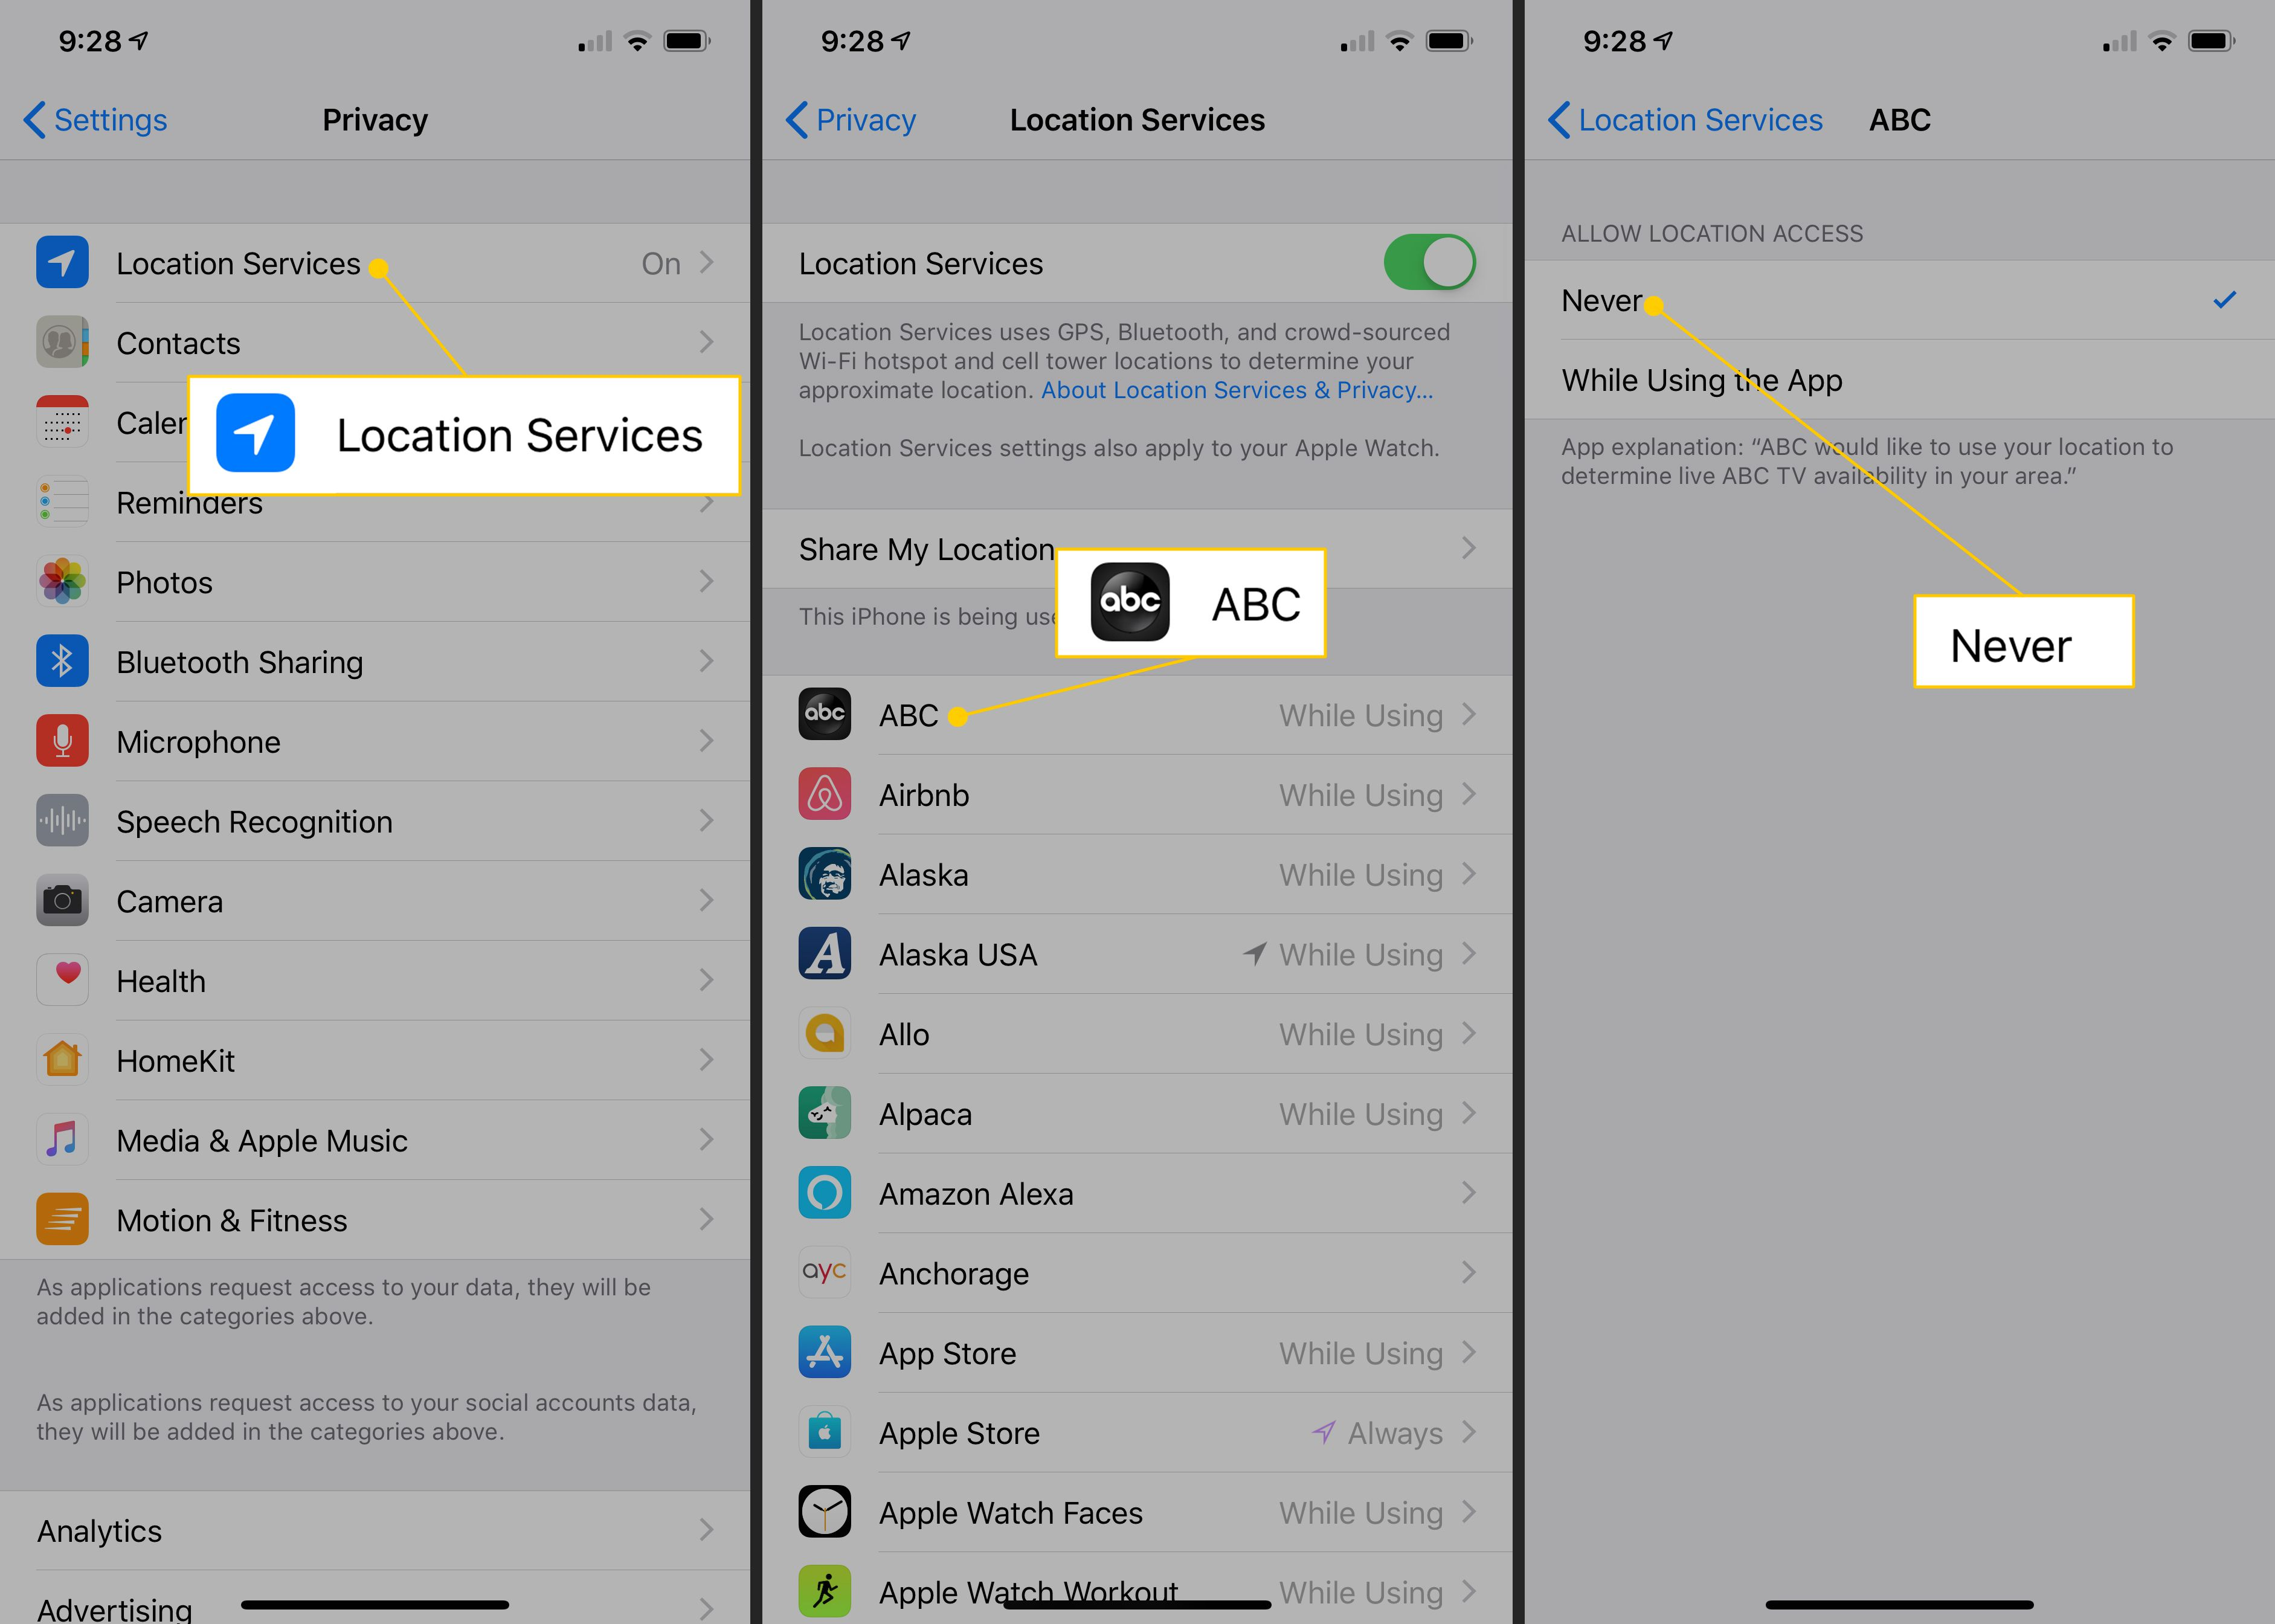 Location Services, ABC app, Never in iOS Settings